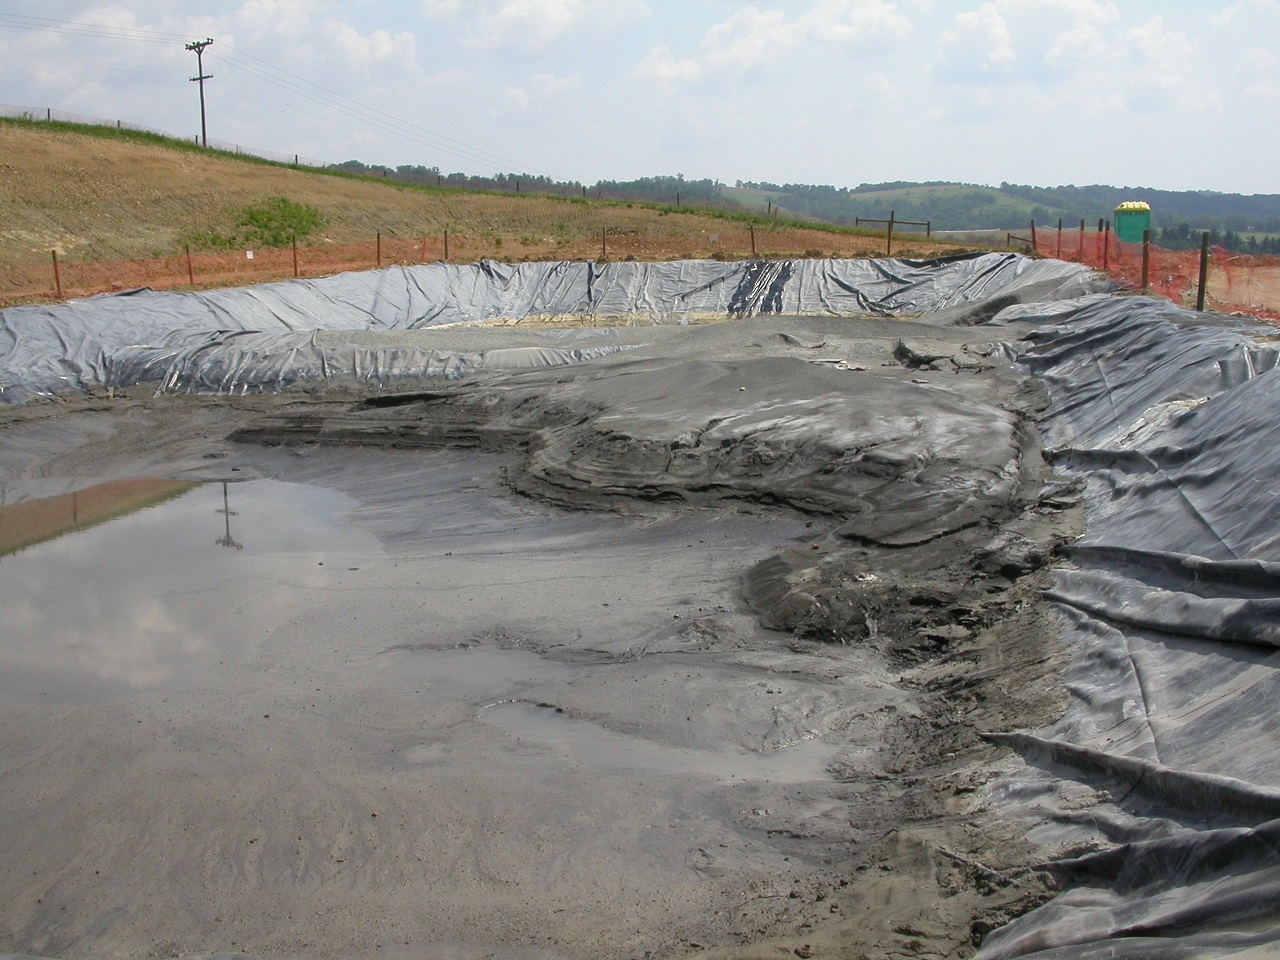 Forums on New Reports on the Health and Economic Impacts of Fracking in Pennsylvania19